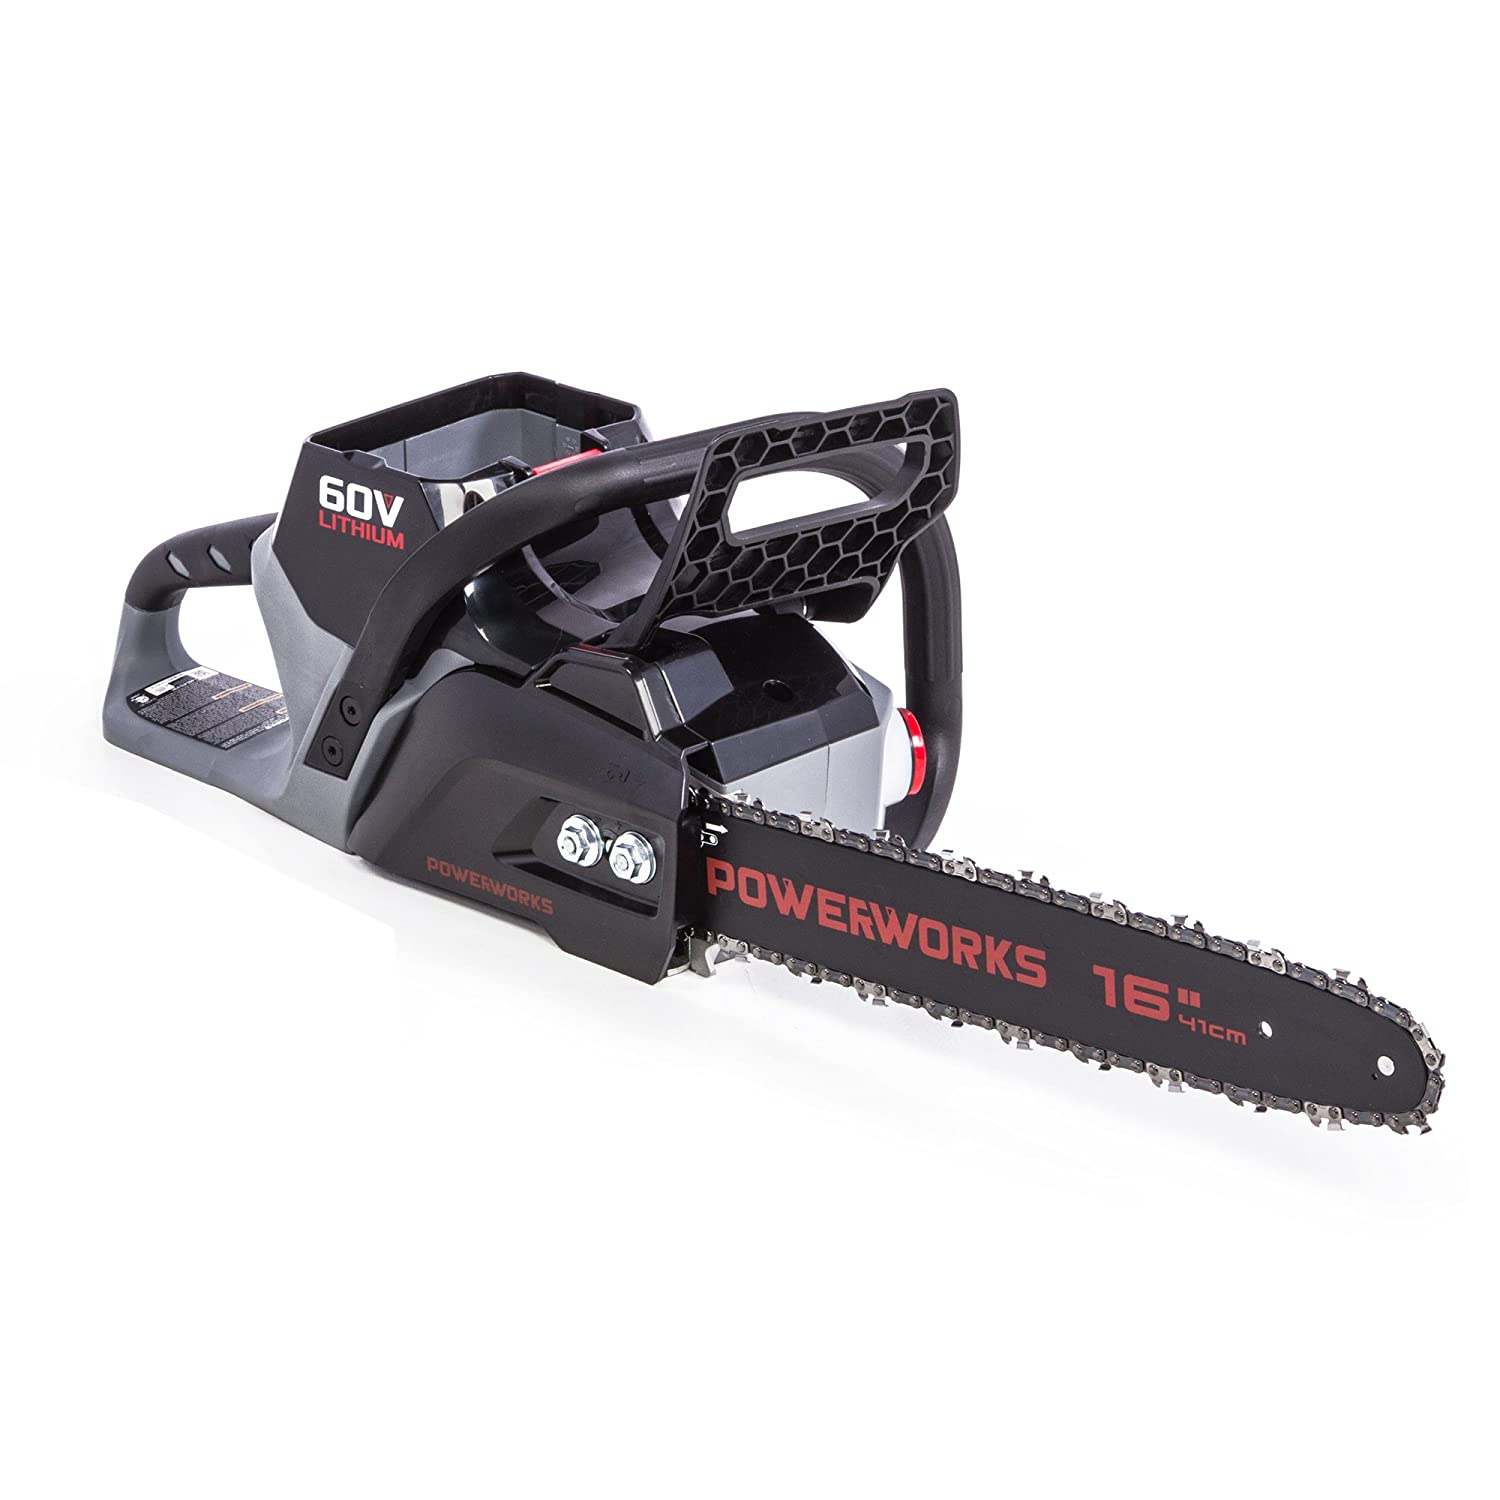 POWERWORKS 60V Brushless 16-inch Chainsaw, Battery Not Included CS60L00PW